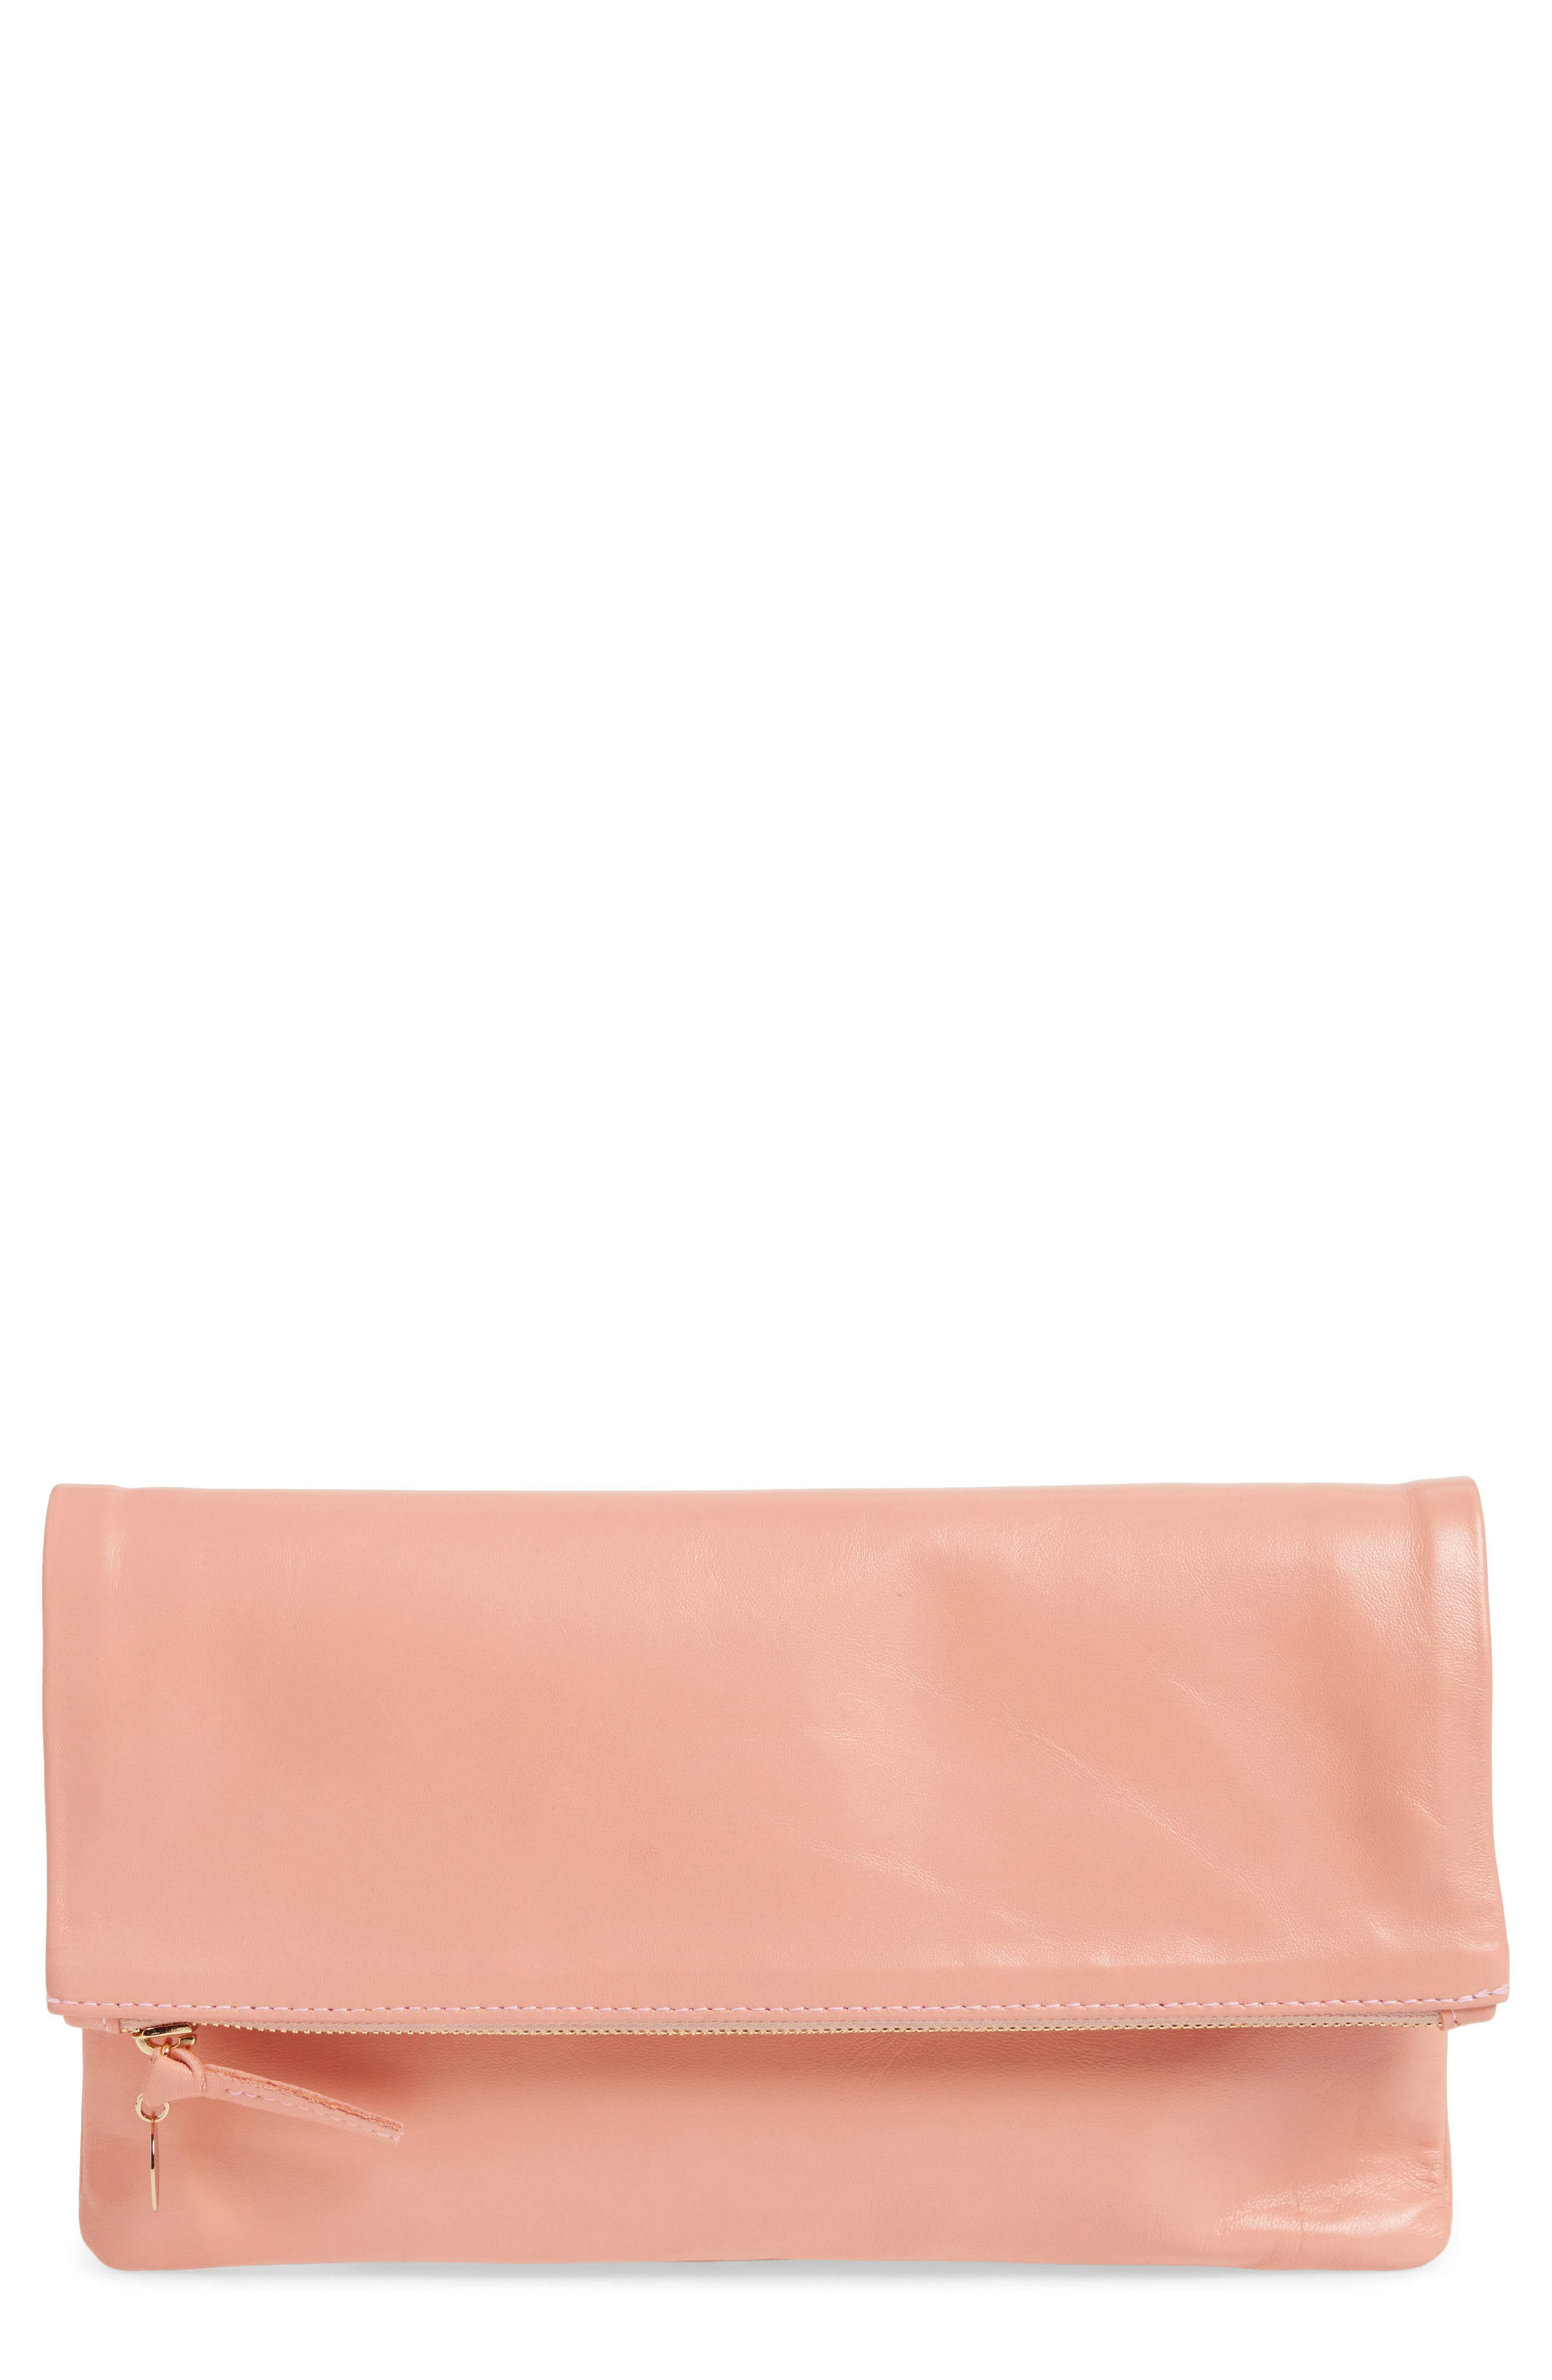 Leather Foldover Clutch,                             Main thumbnail 1, color,                             650